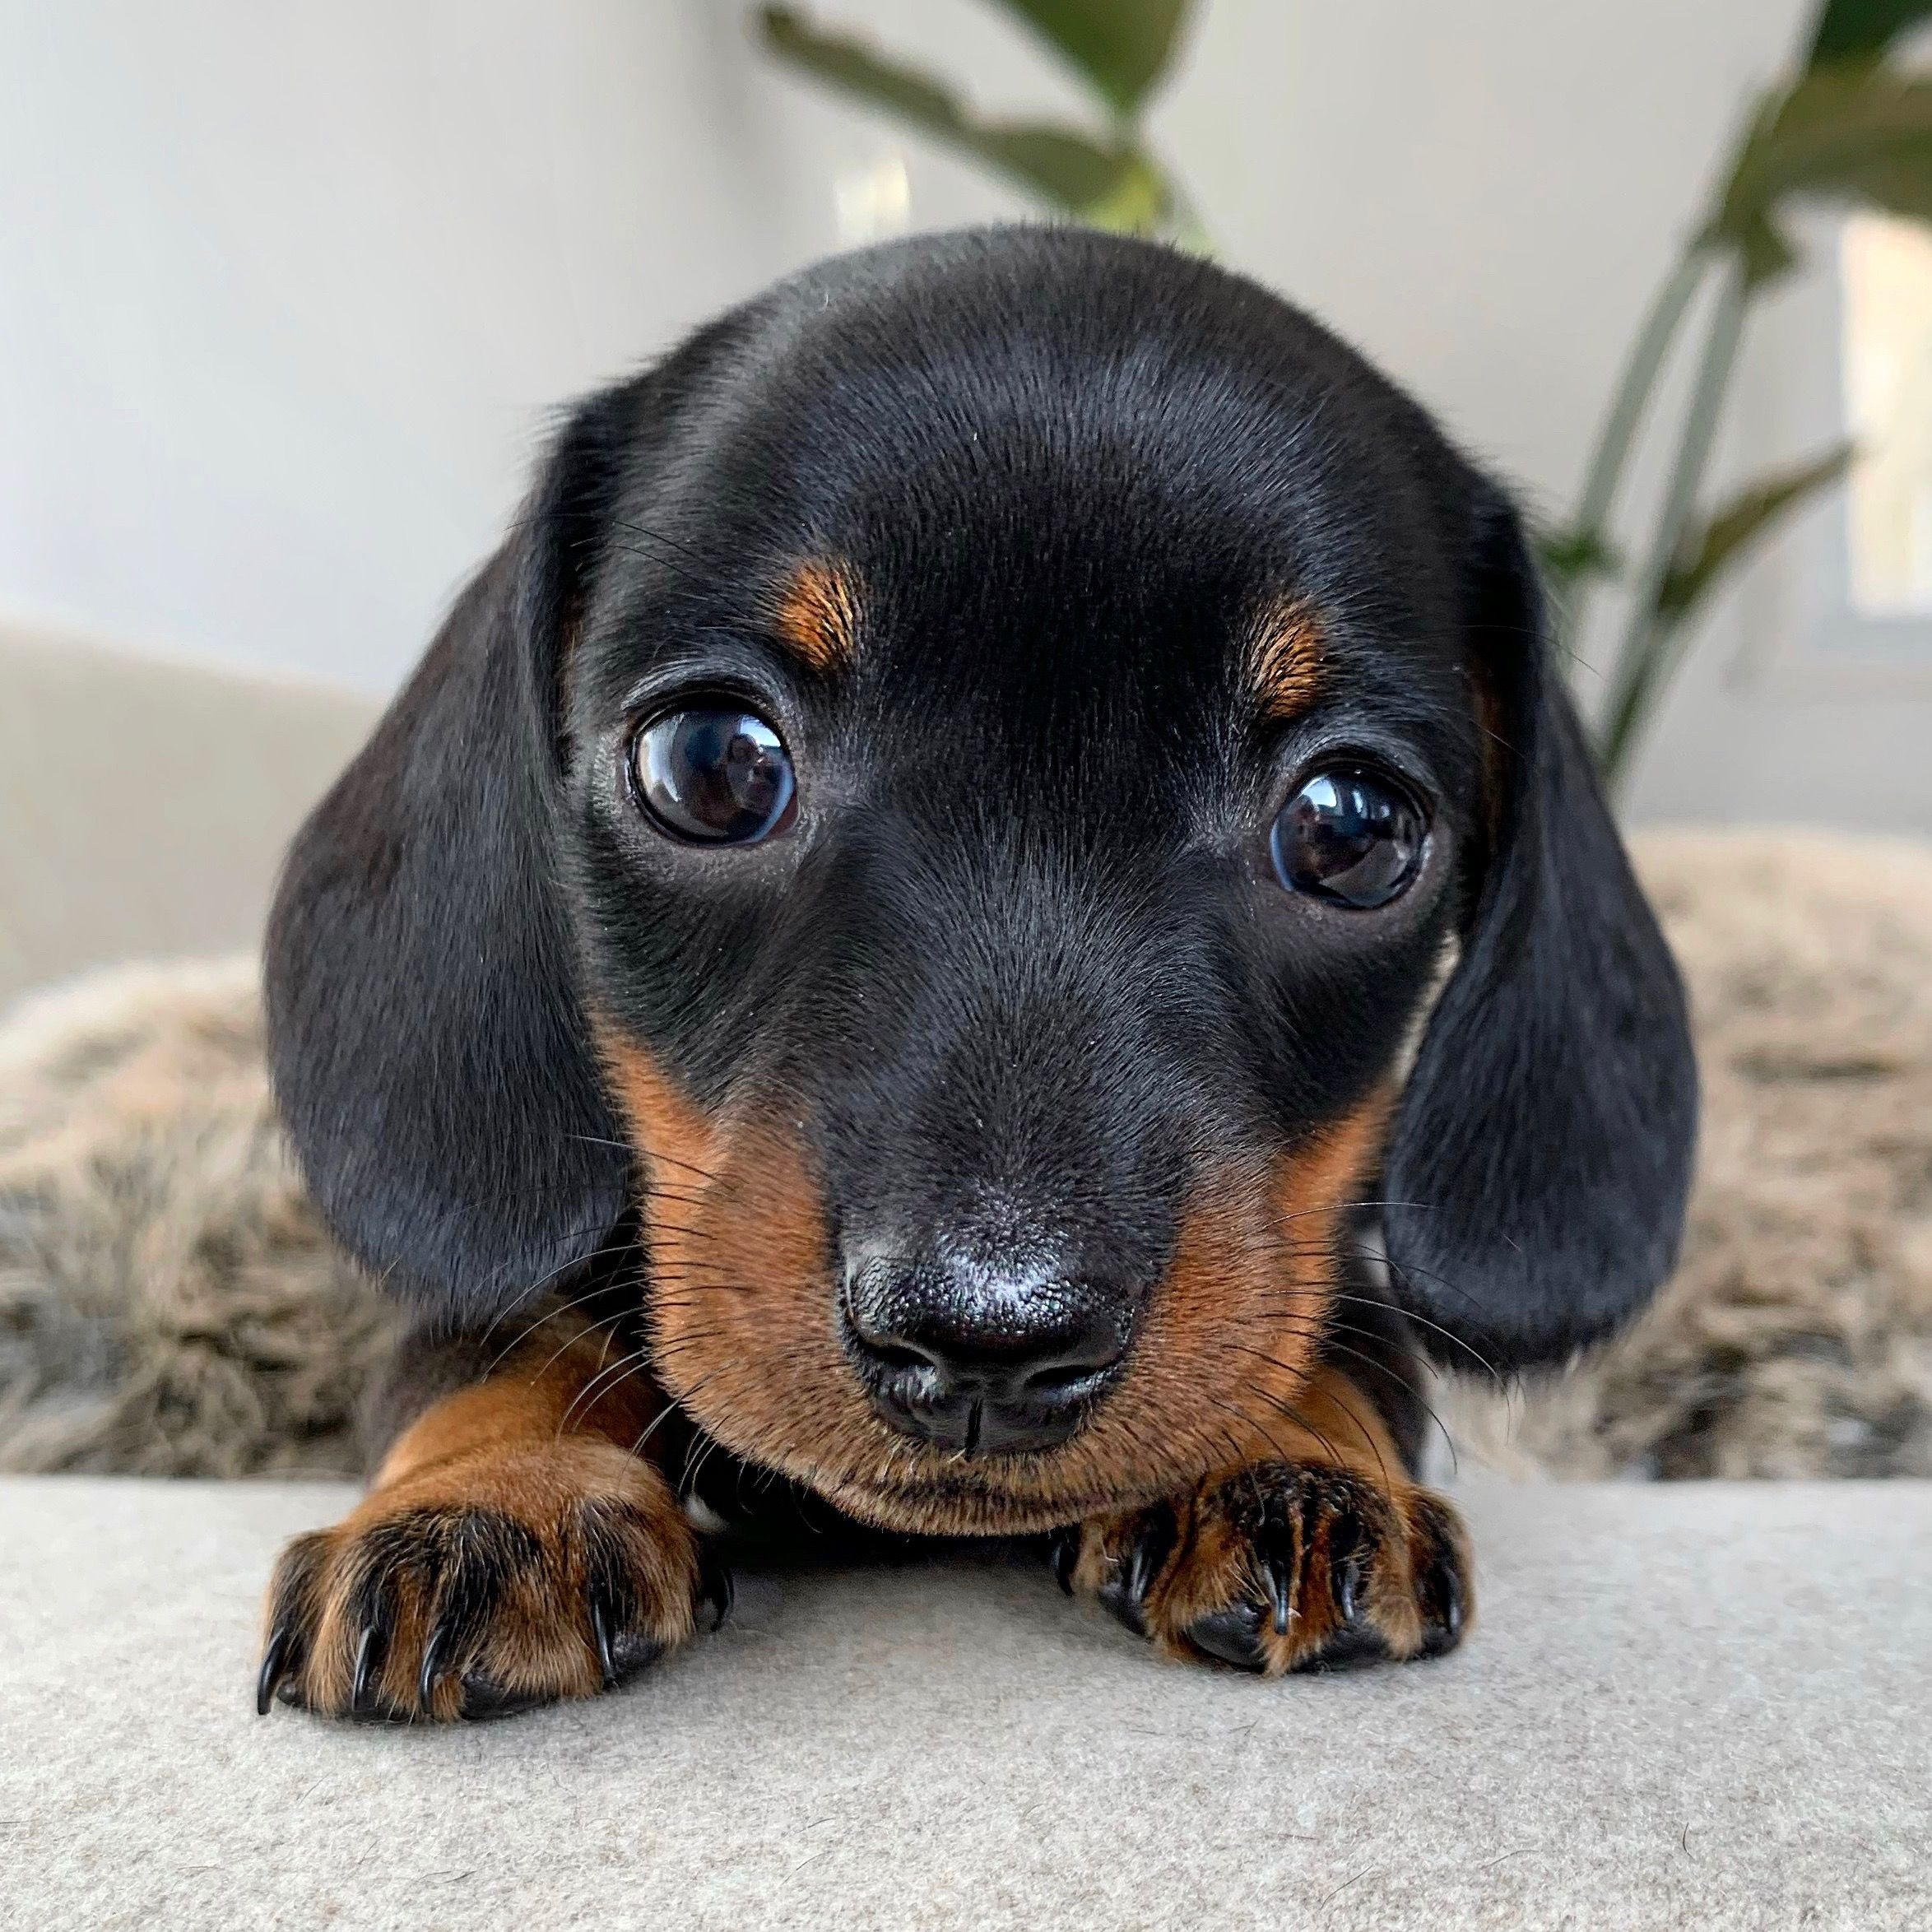 Playful Dachshund Puppies Youtube In 2020 Puppies Baby Dogs Puppy Dog Eyes